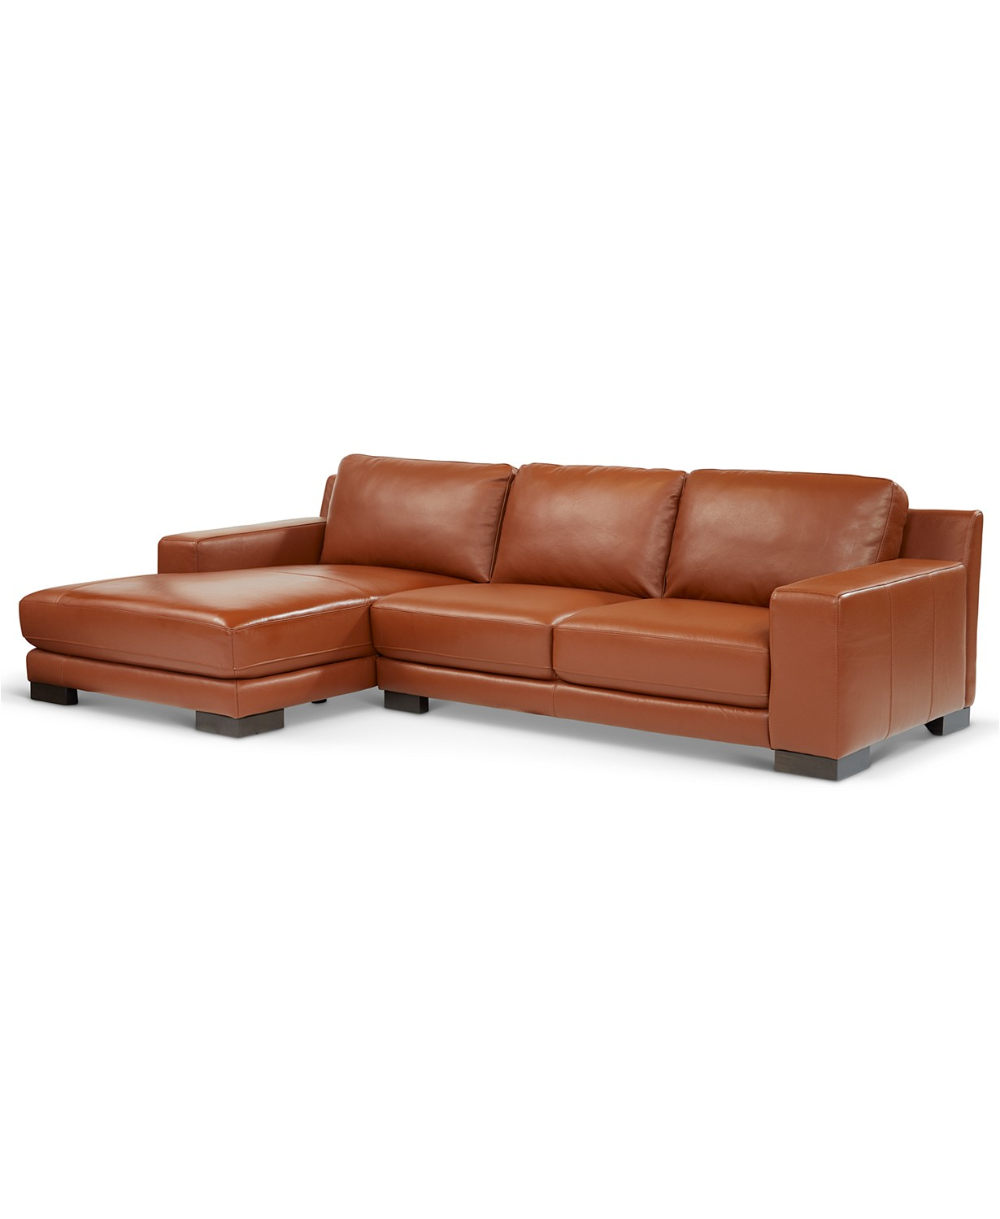 Best Furniture Darrium 2 Pc Leather Sofa With Chaise Created 400 x 300